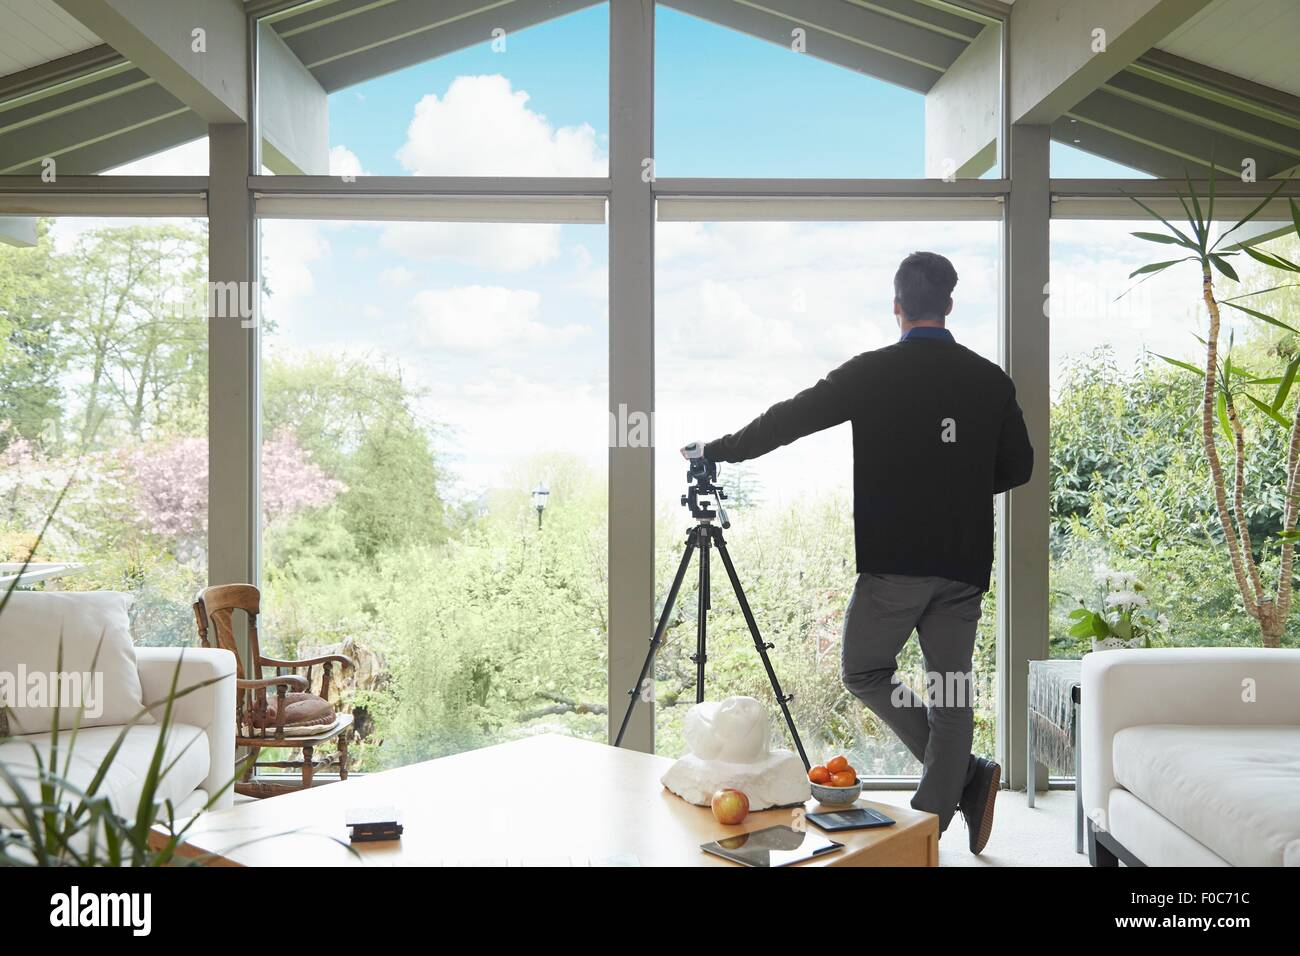 Rear view of man leaning on telescope looking out of window admiring garden scenic - Stock Image